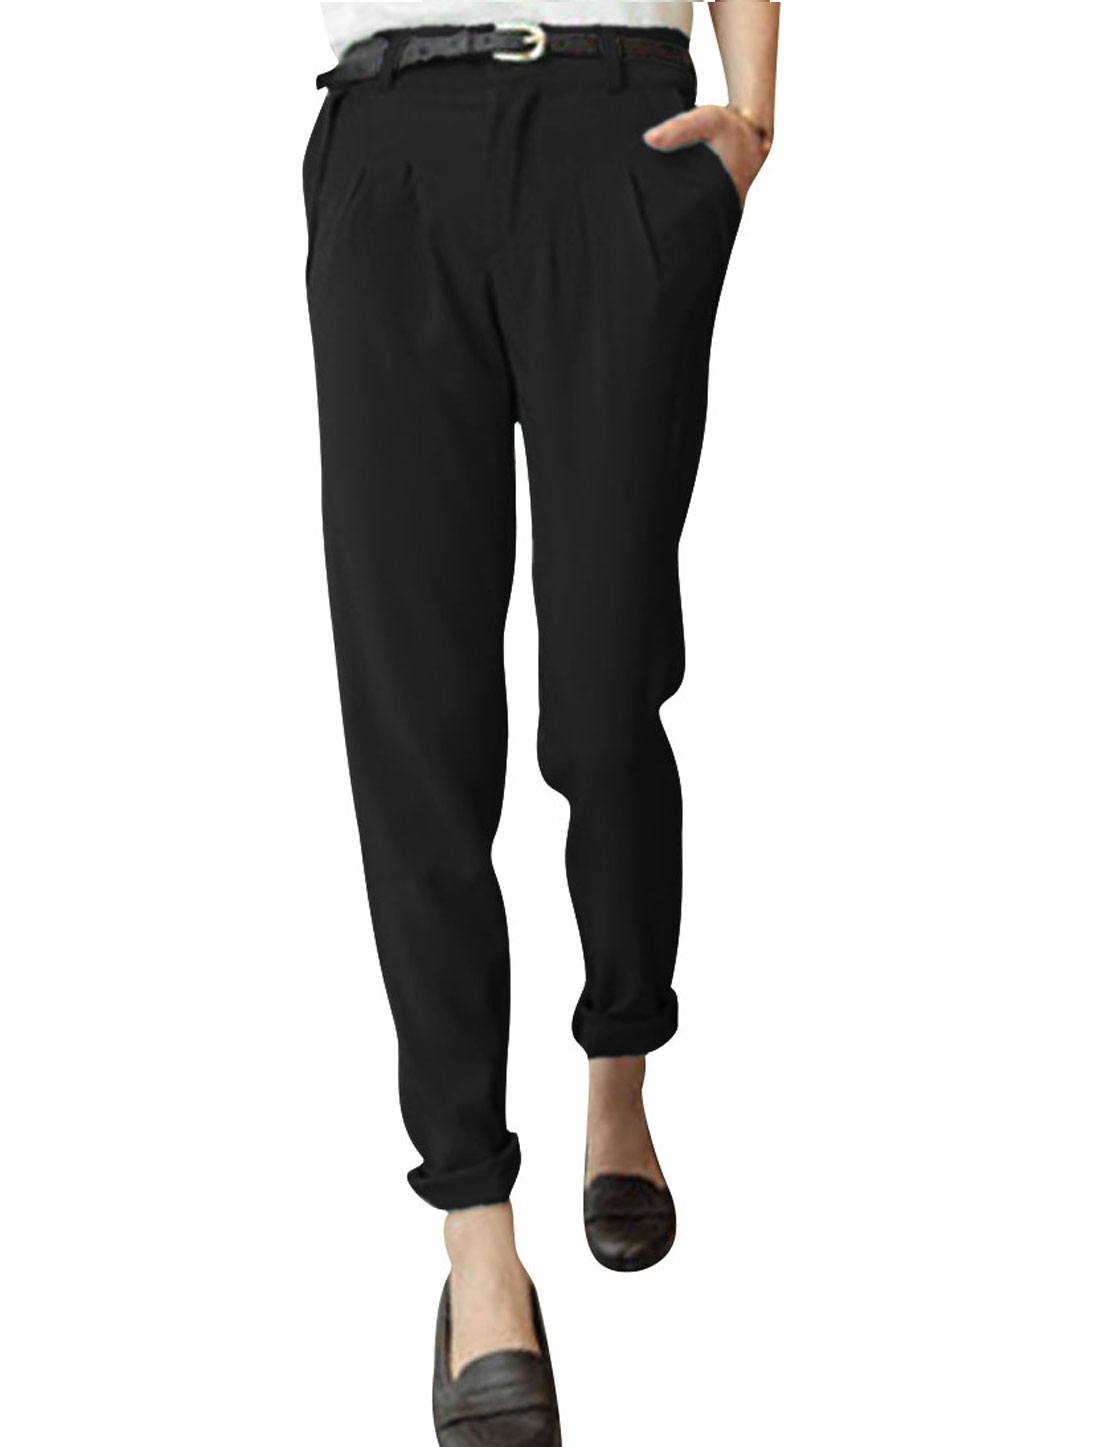 Ladies Low Rise Front Pockets Zip Fly Straight Trousers Black XS